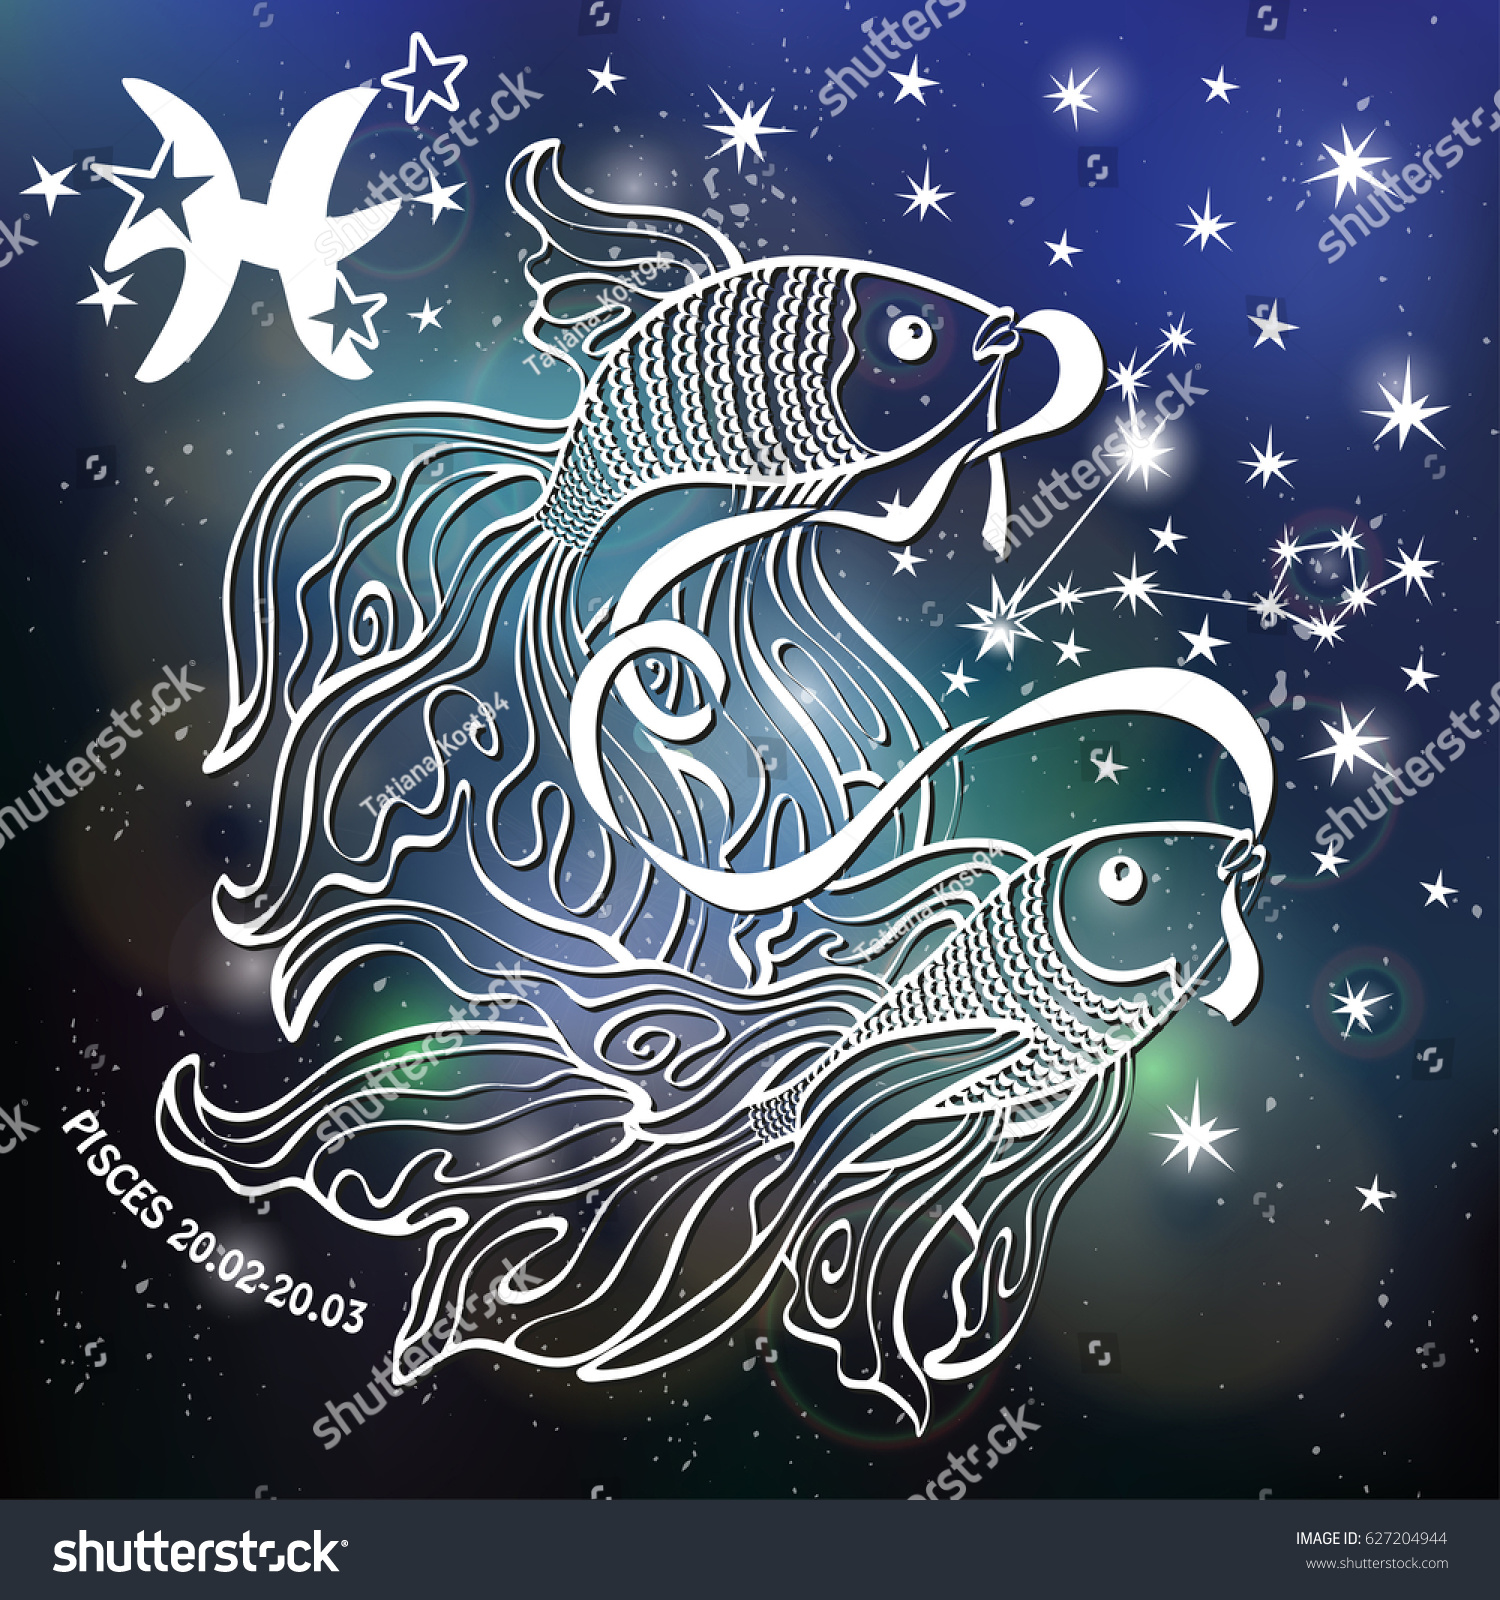 Royalty Free Stock Illustration Of Pisces Zodiac Sign Pisces